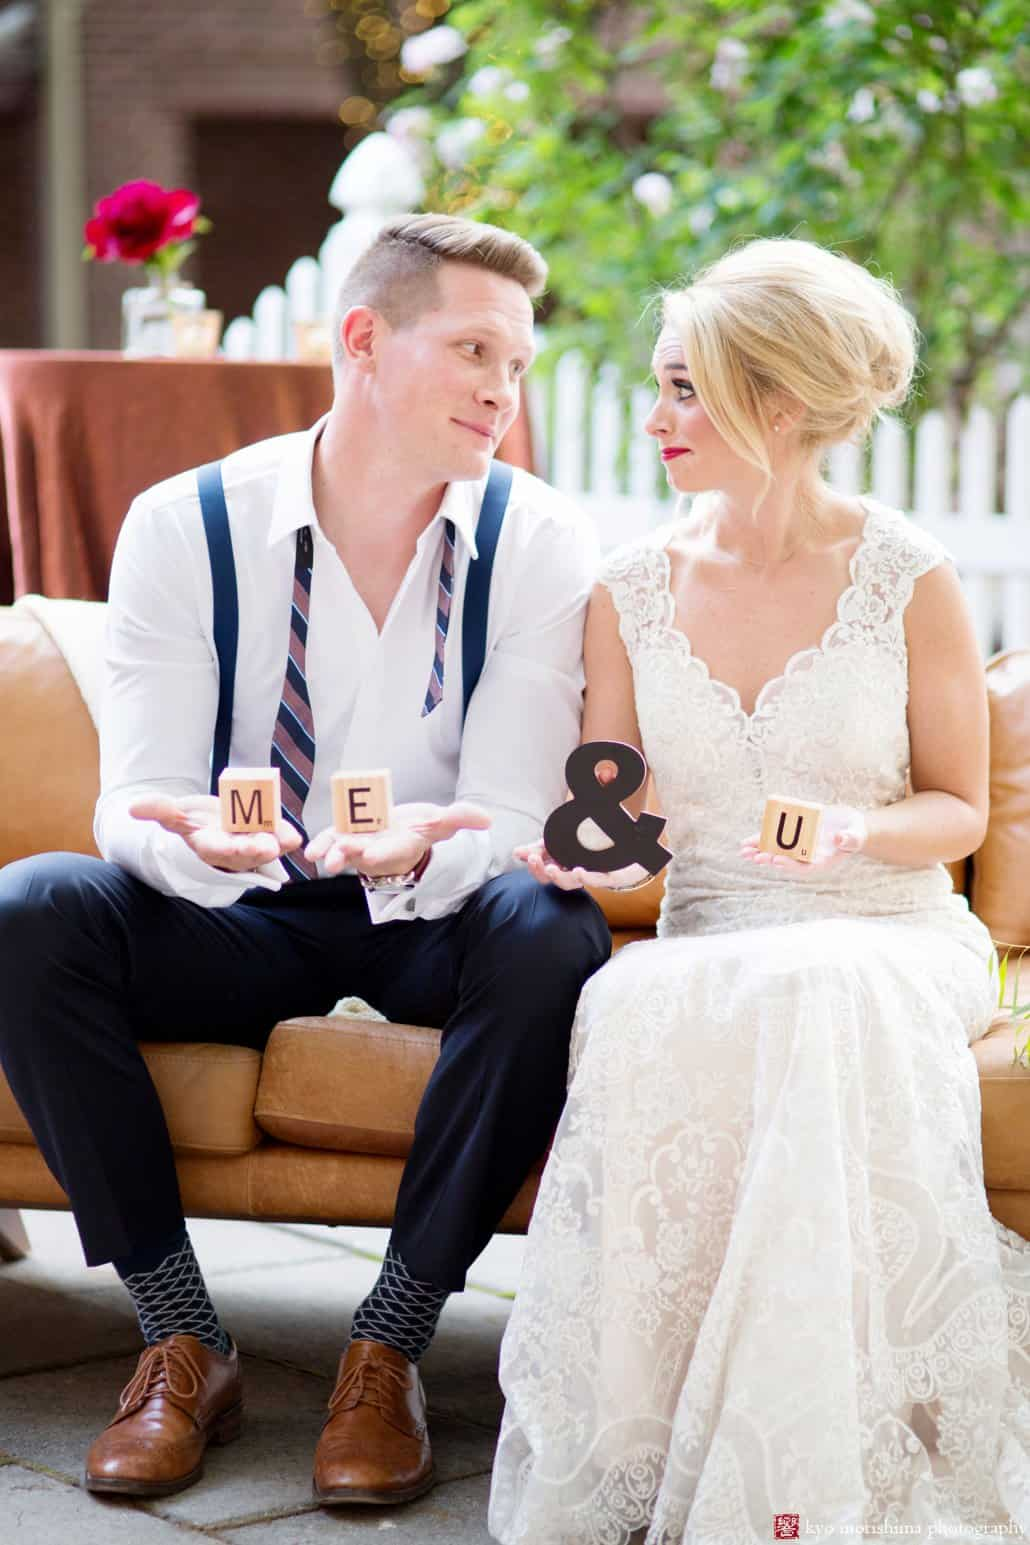 """Bride and groom holding """"me & u"""" props during Nassau Inn """"Madmen weddng"""" styled shoot, designed by Kristin Rockhill of Details of I Do, photographed by Kyo Morishima. Bride wears BHLDN wedding dress."""